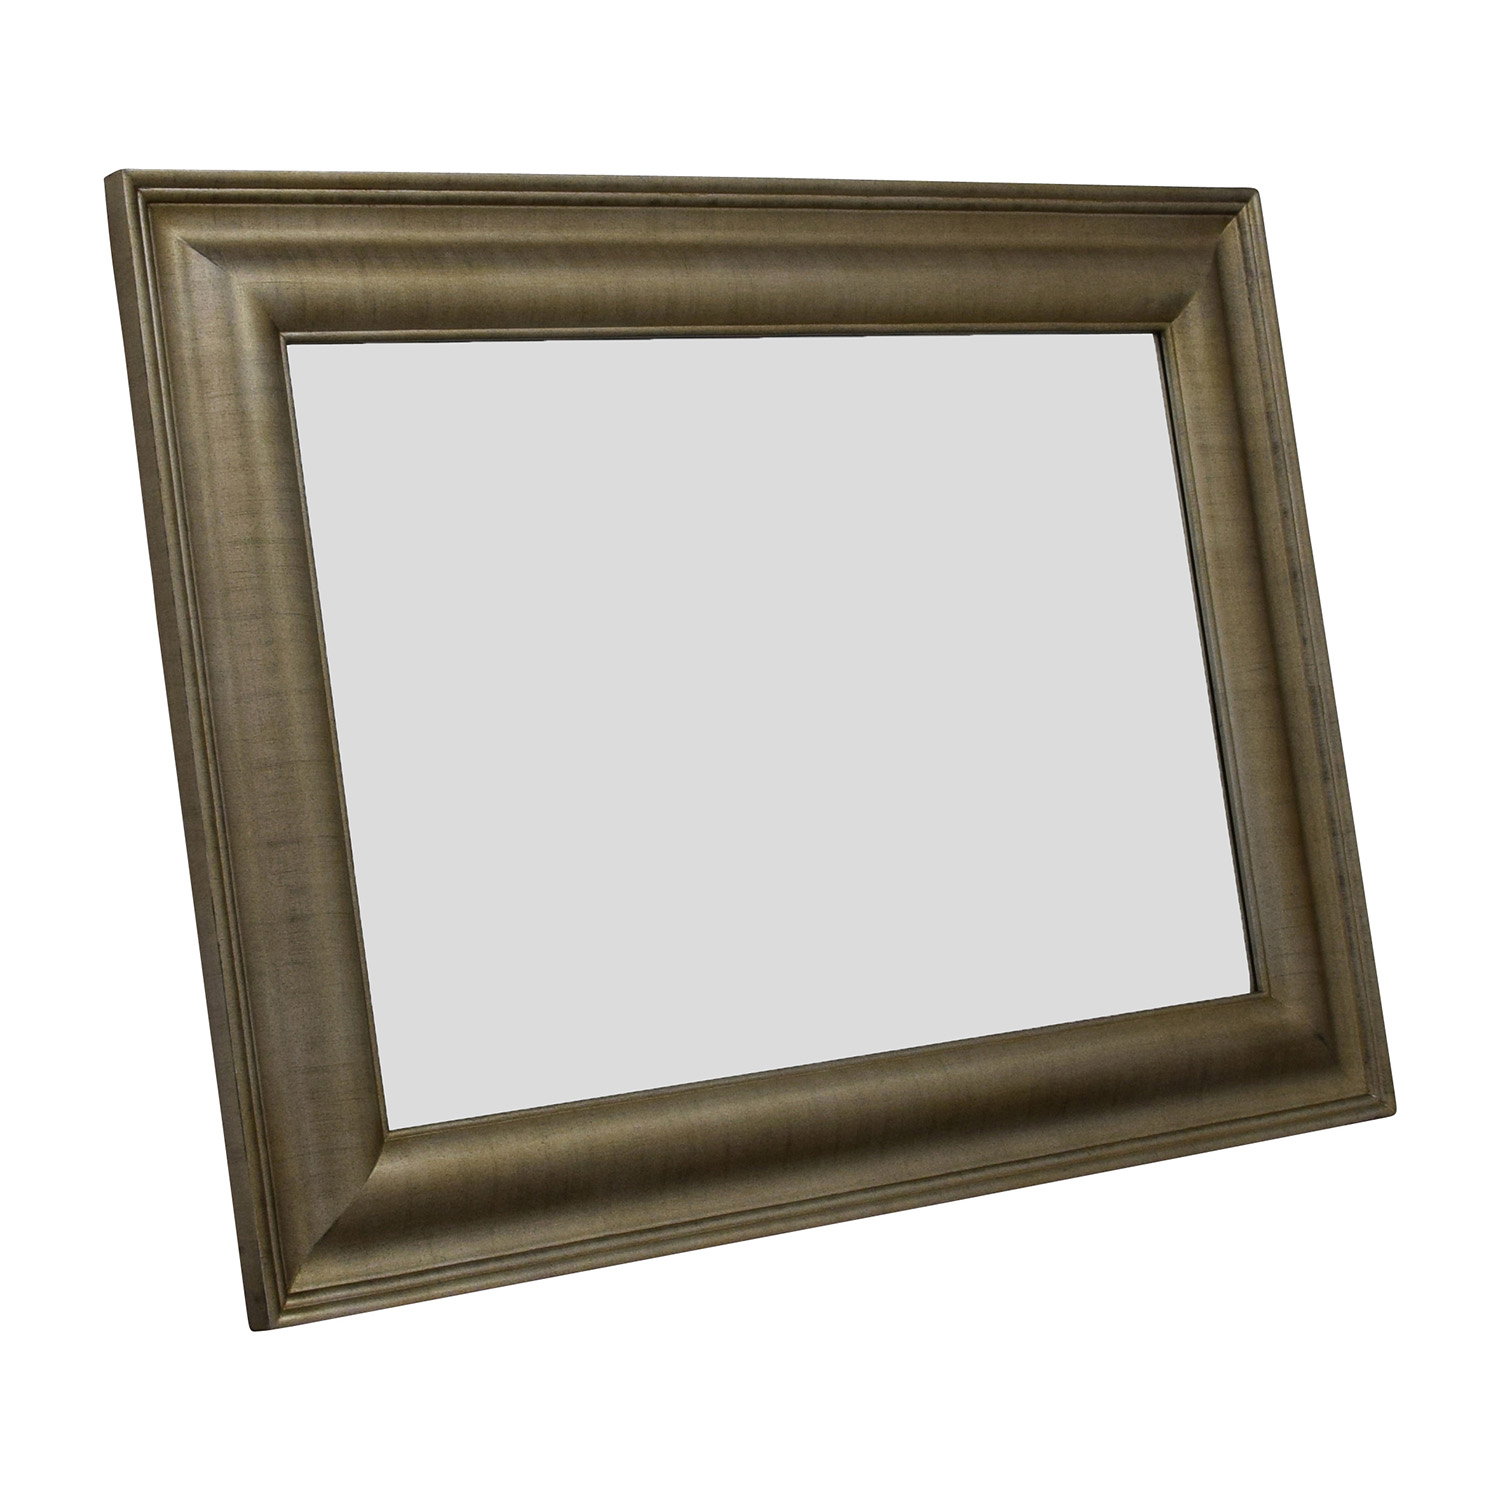 shop The Bombay Company Geffye Wall Mirror The Bombay Company